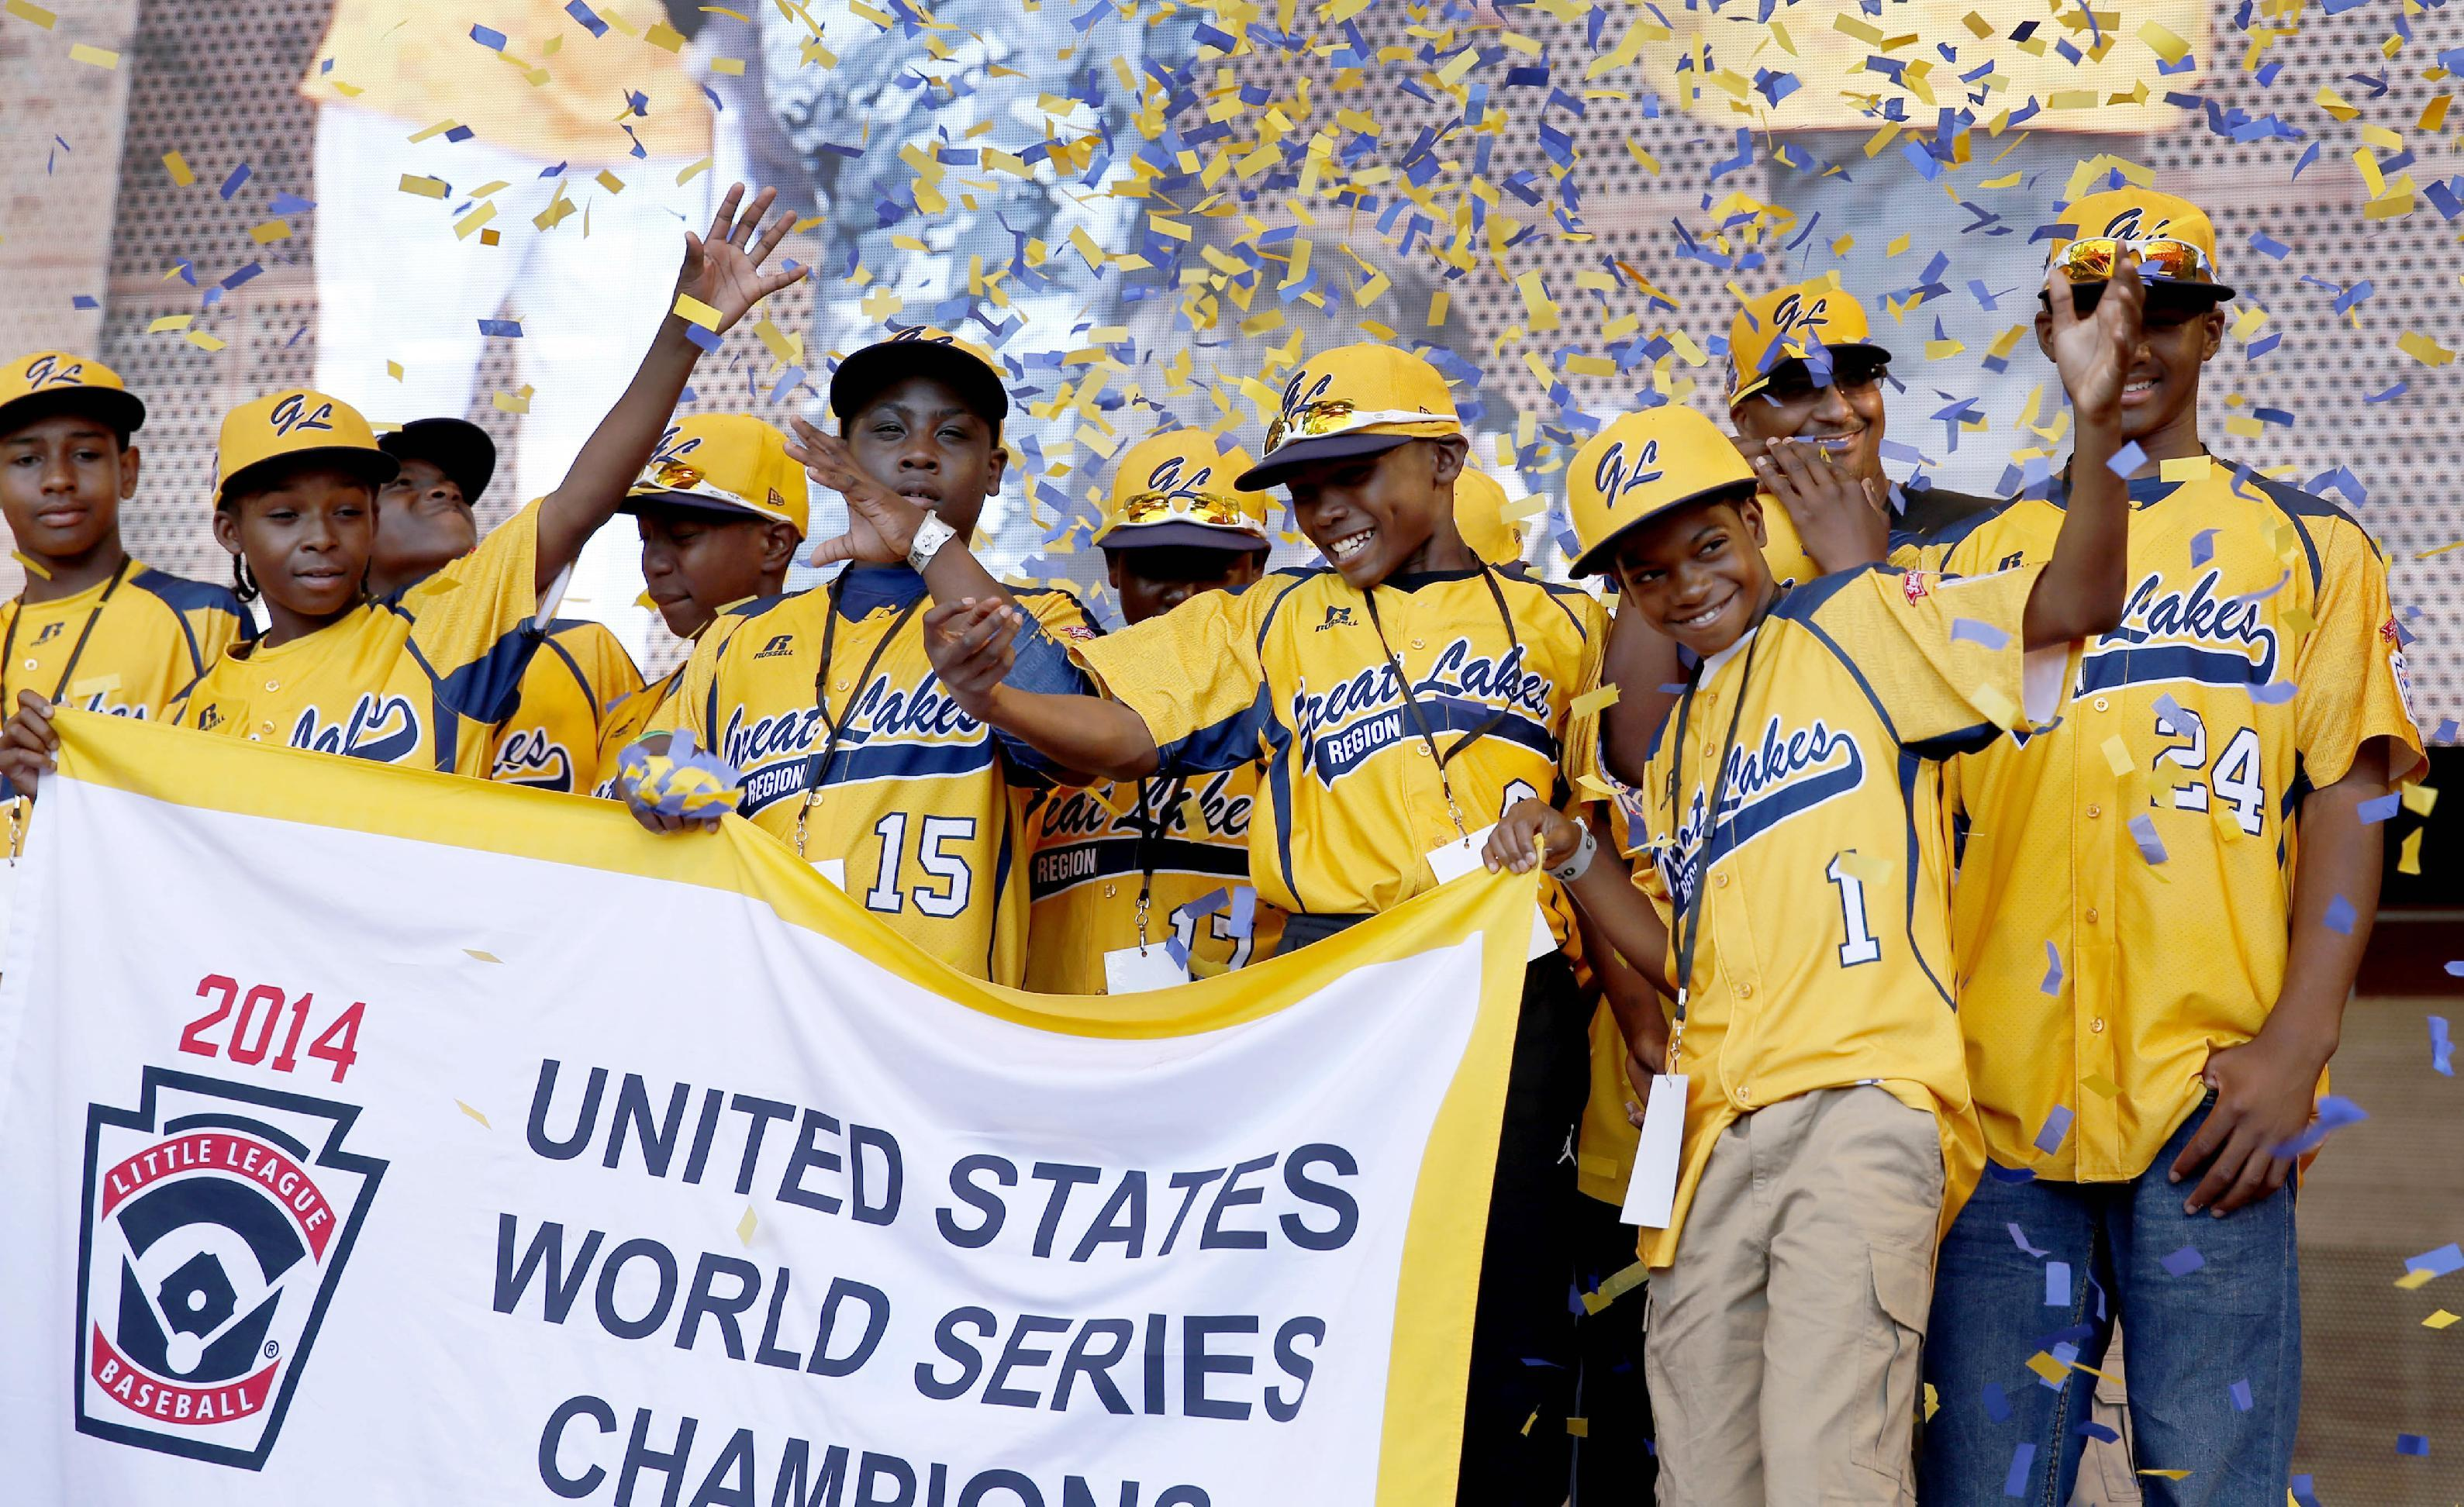 Little League champs face new allegations of cheating